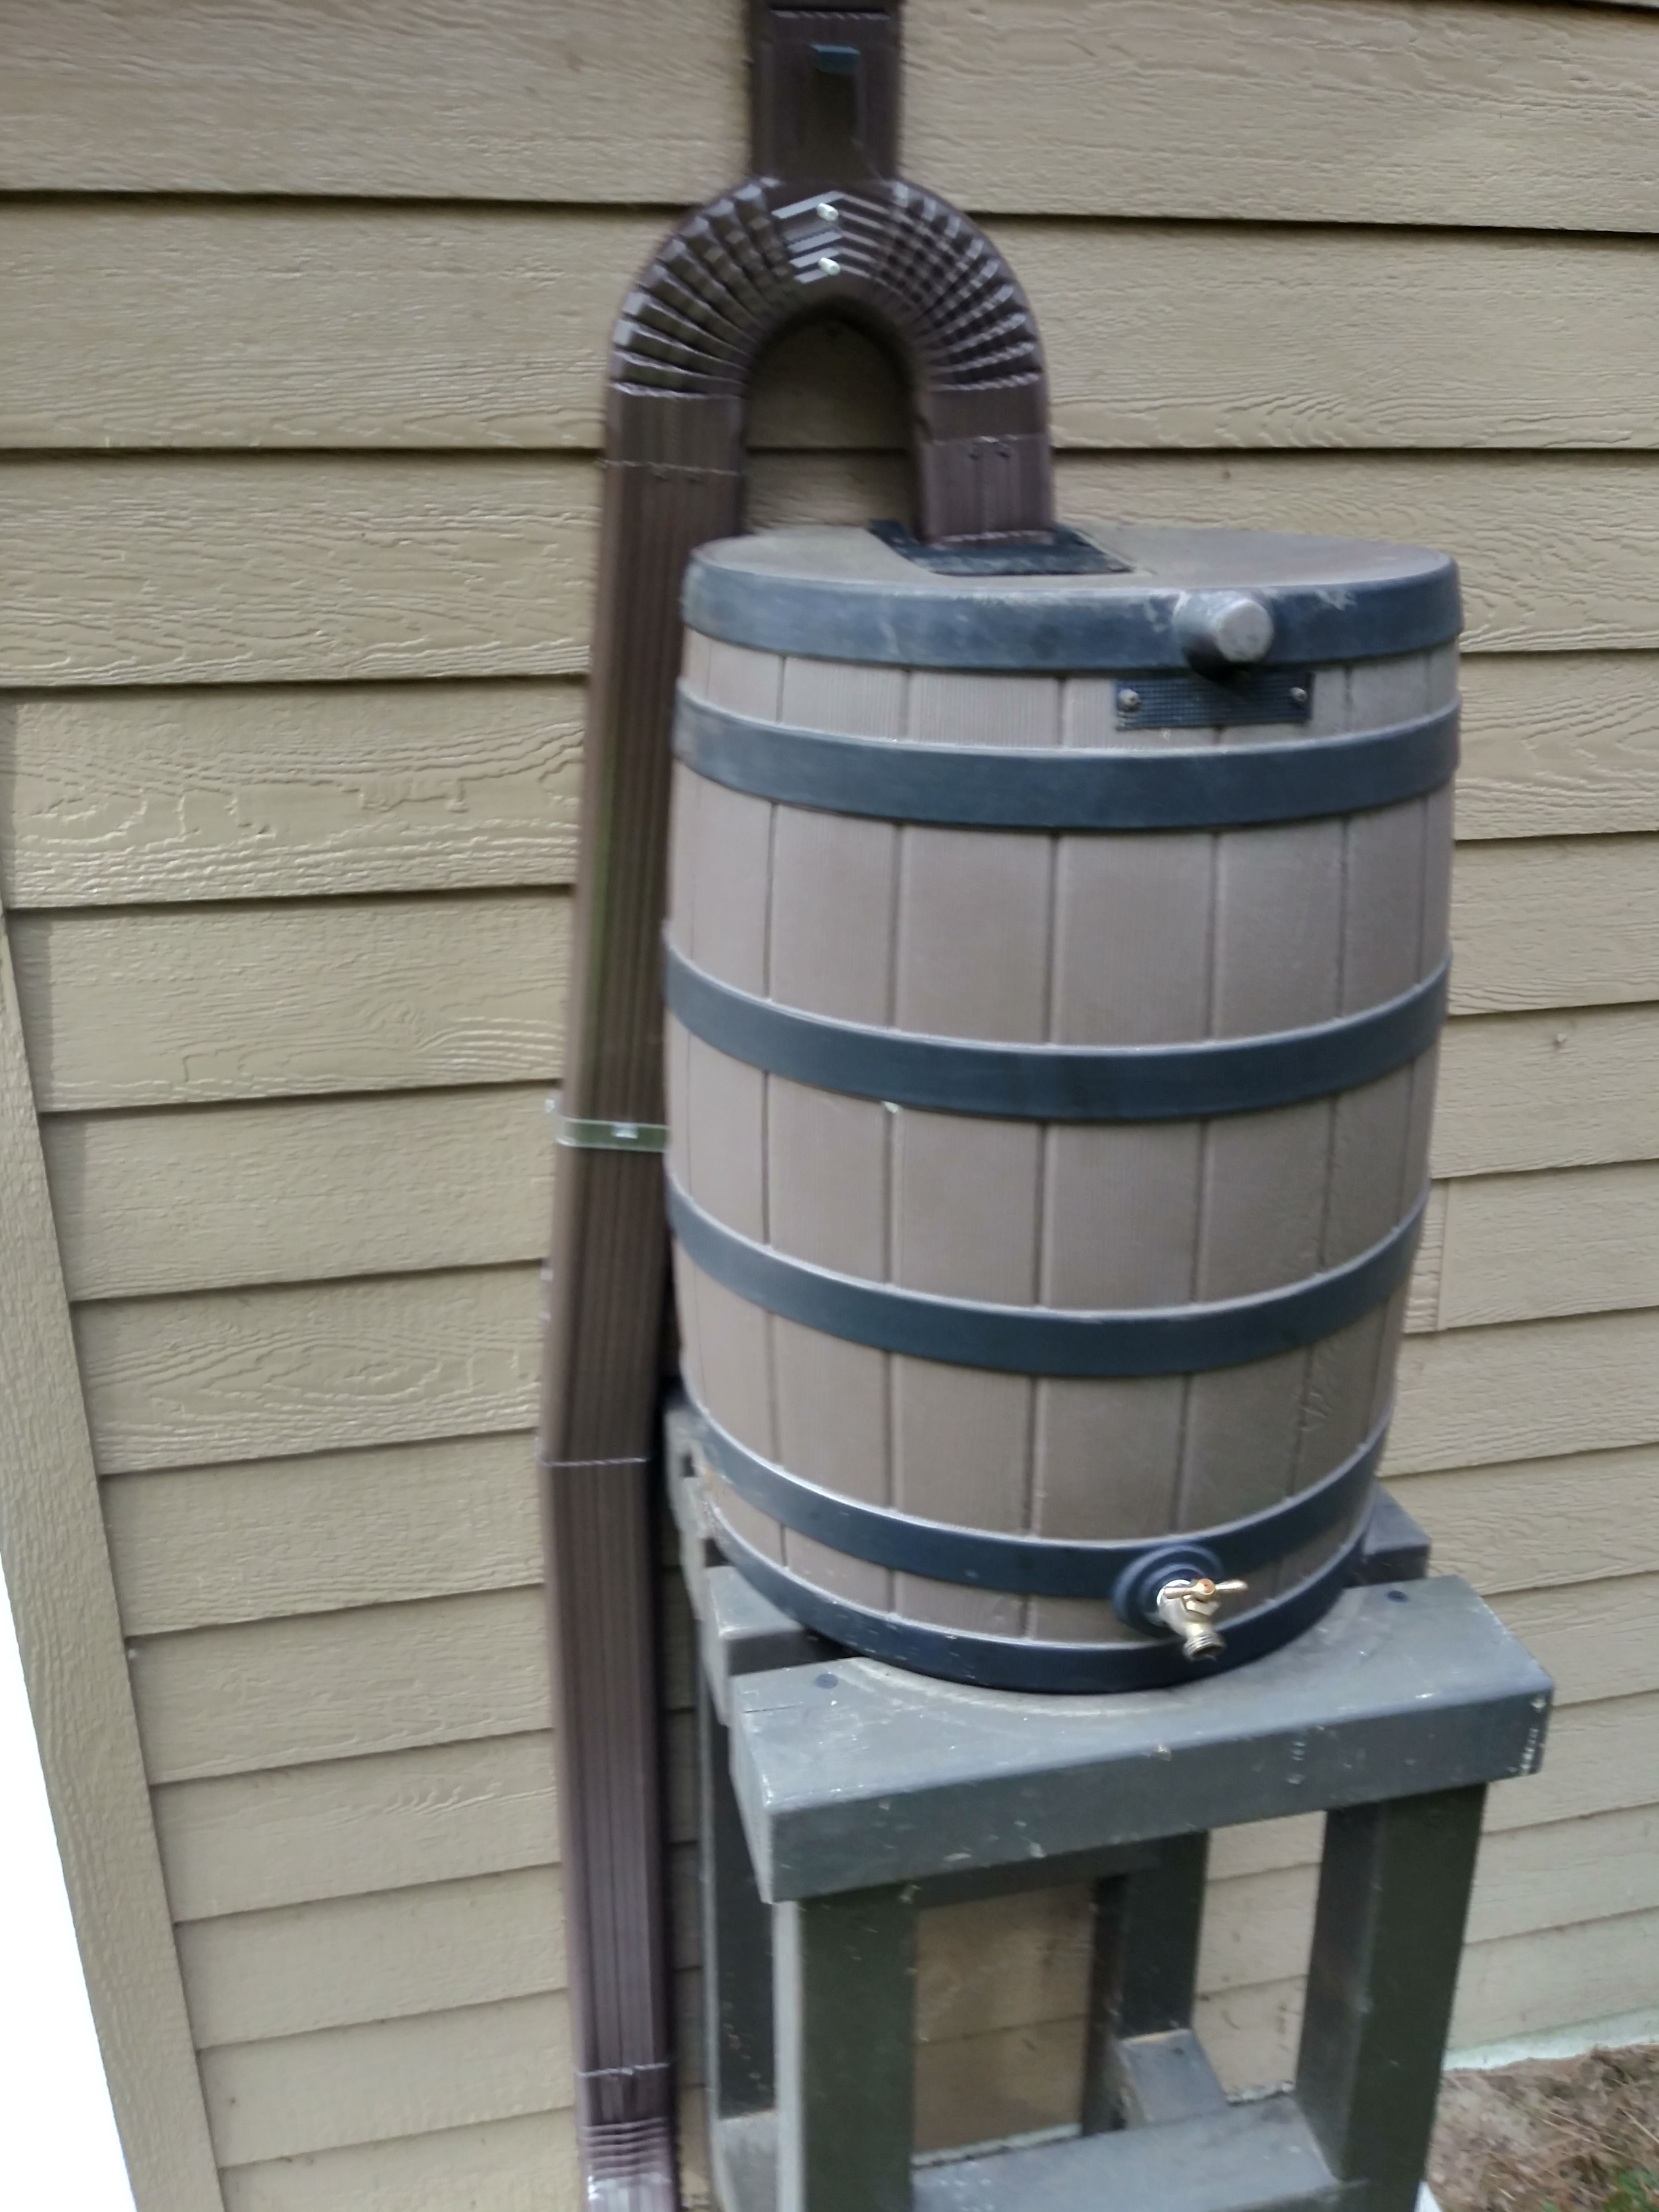 Our Technicans Installed A Leafguard Y Adapter To Connect The Downspout And Rain Barrel Come Winter The Homeowner Rain Barrel Seamless Gutters Leaf Guard